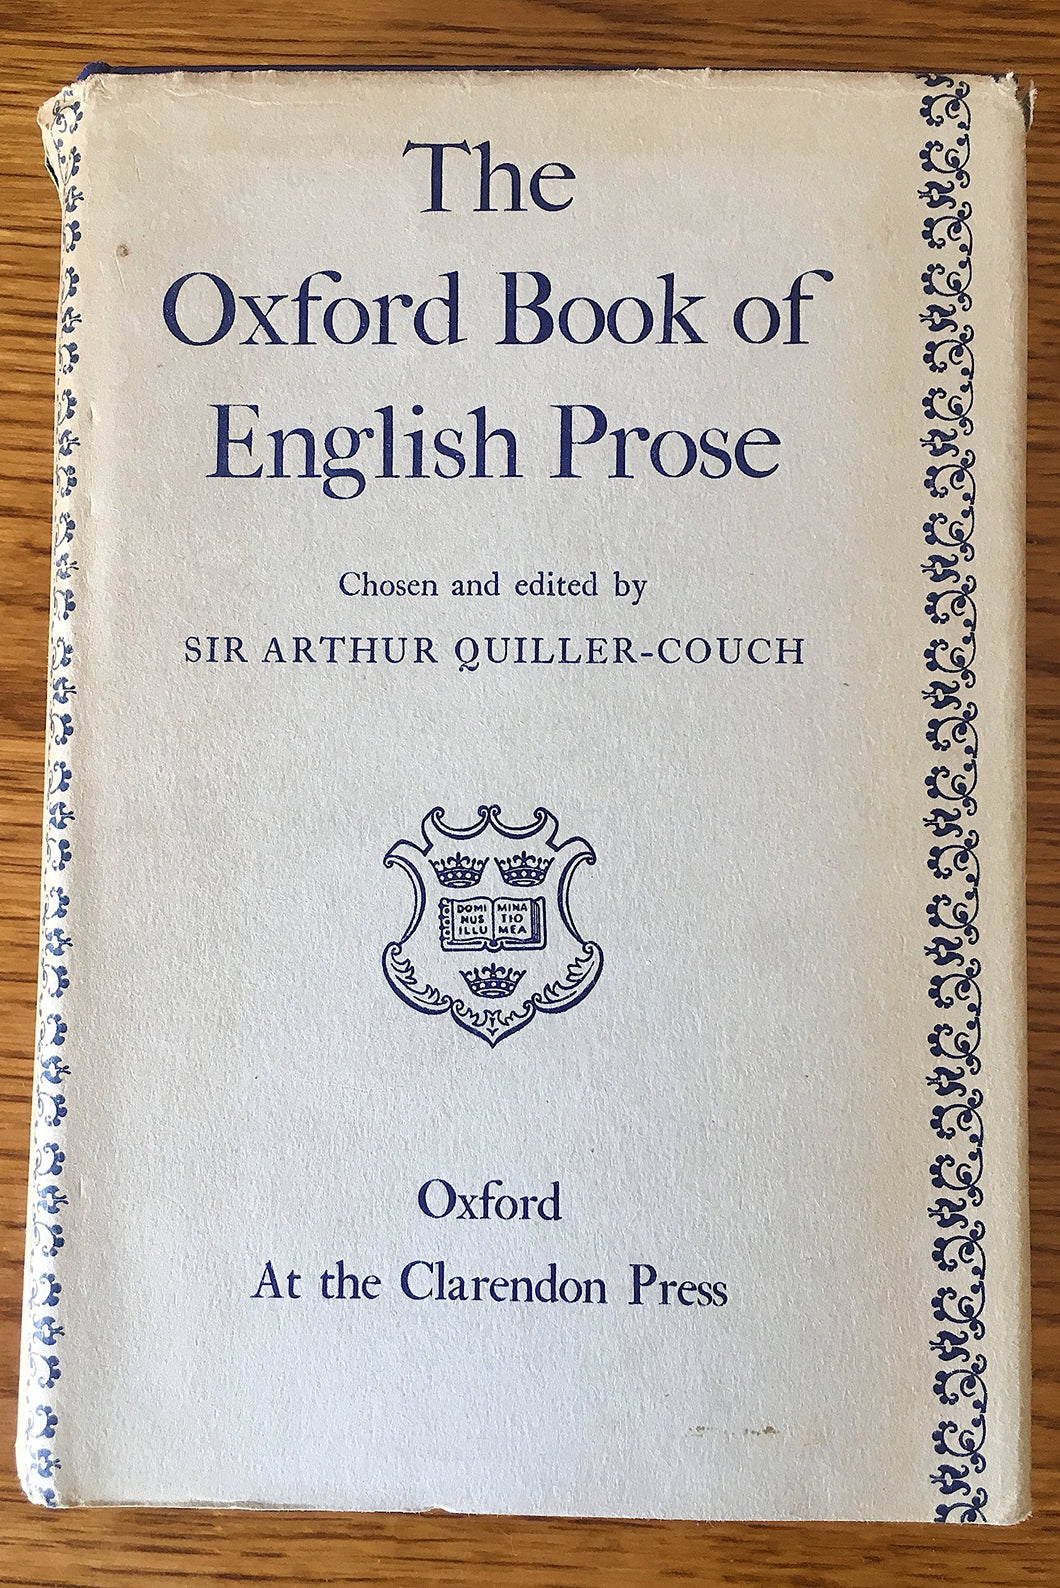 THE OXFORD BOOK OF ENGLISH PROSE [Hardcover] Quiller-Couch, A.